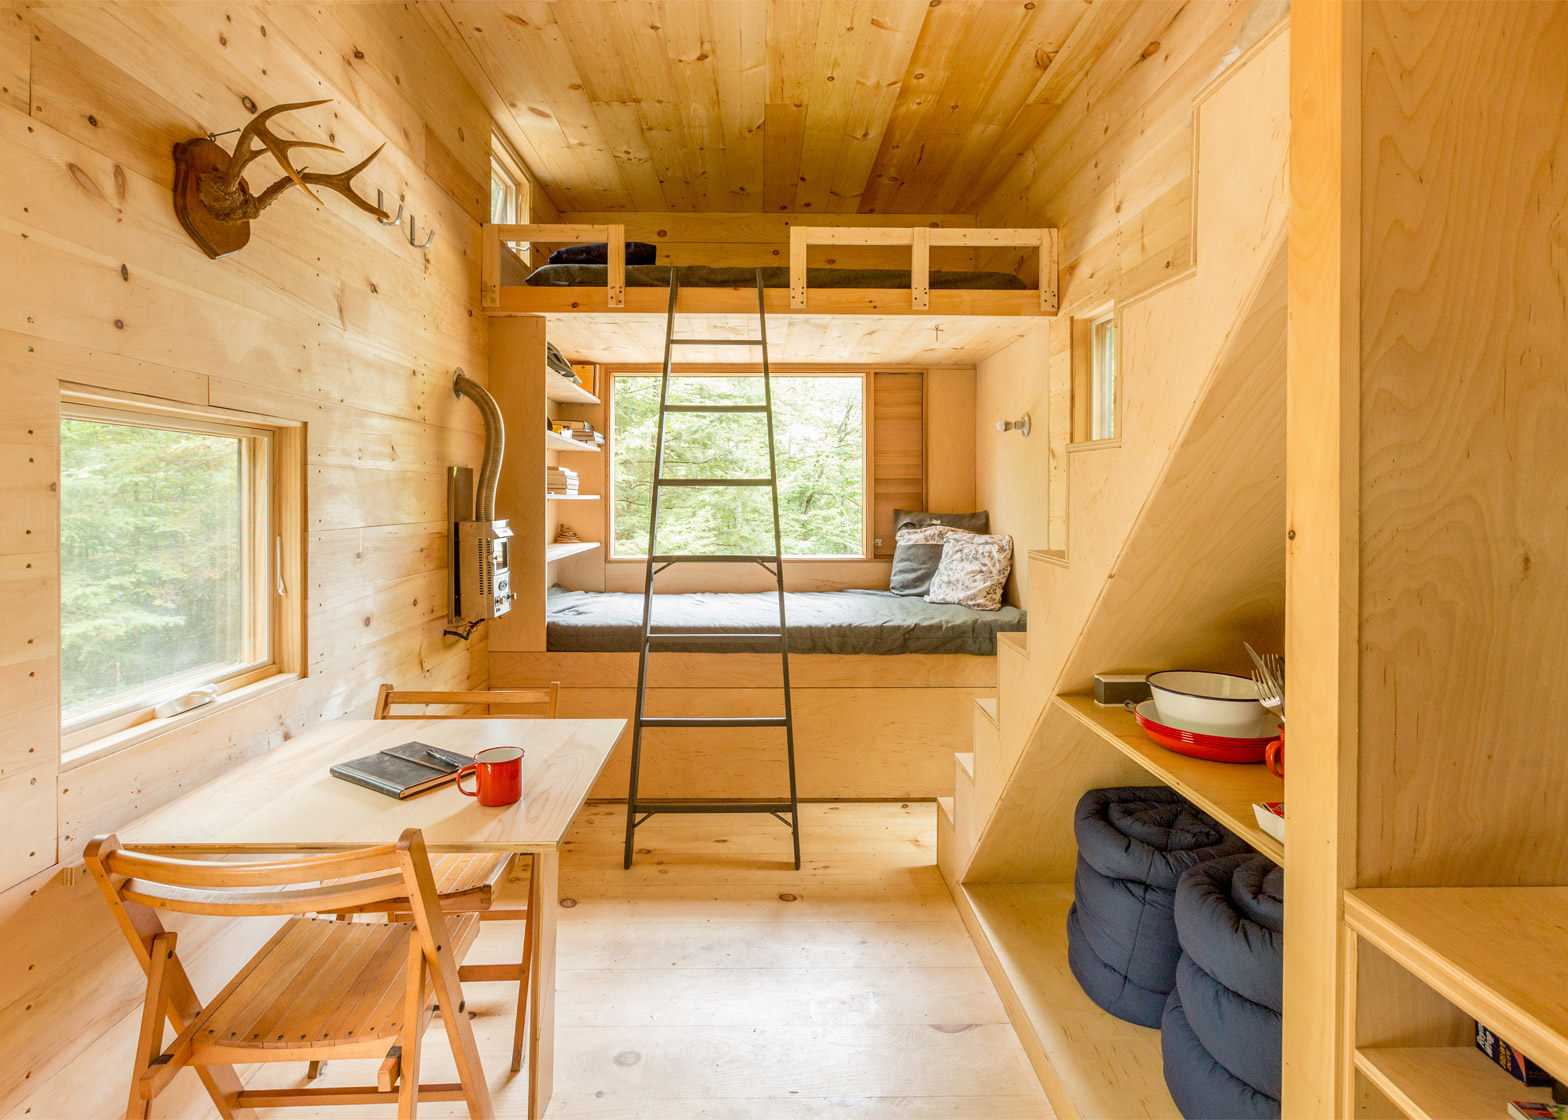 Harvard students create tiny vacation houses for stressed-out city dwellers